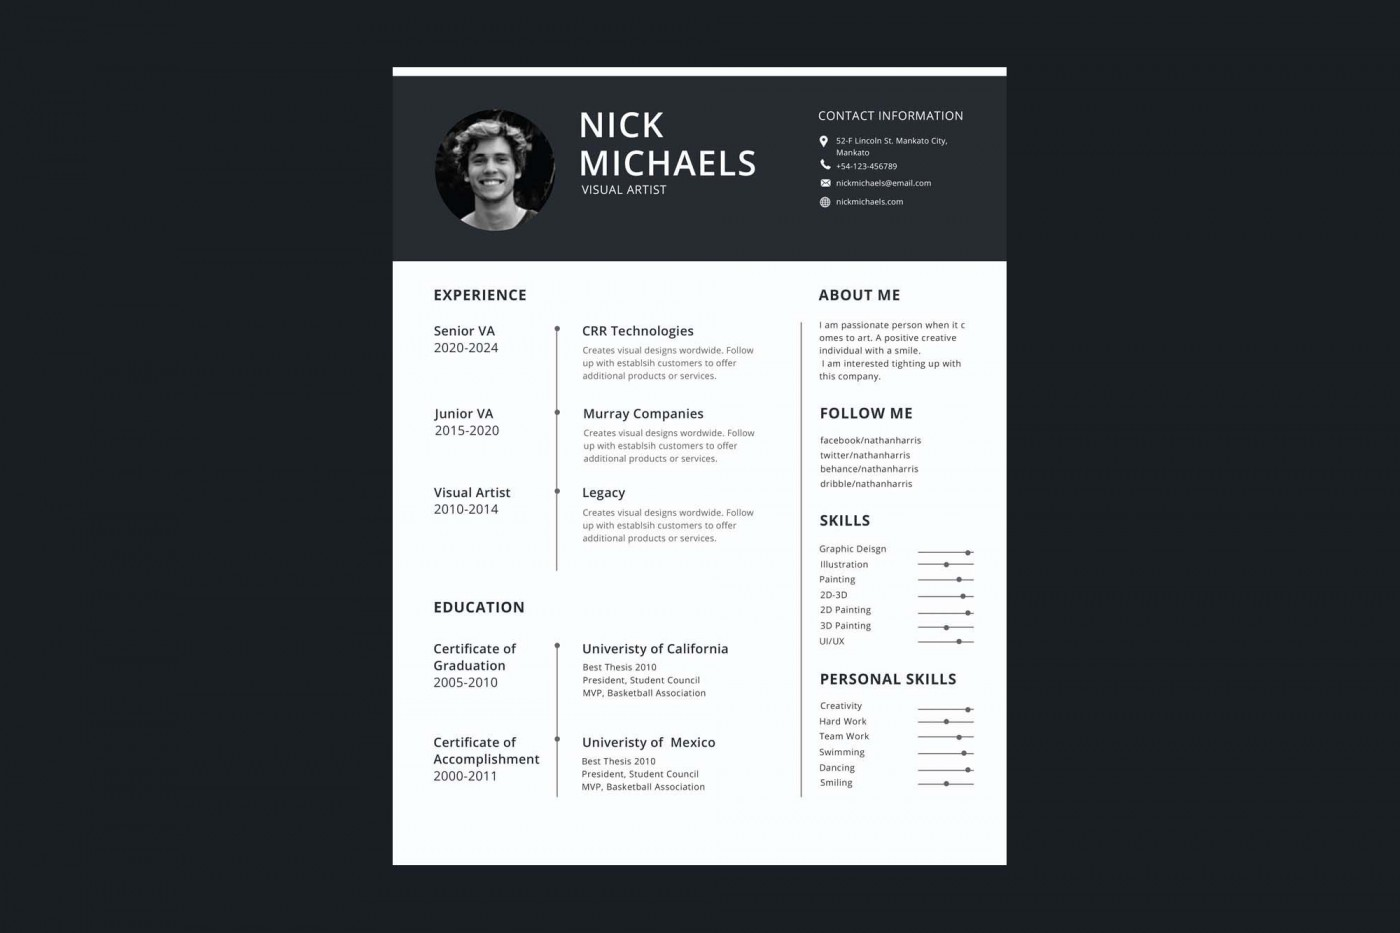 006 Formidable 1 Page Resume Template Highest Quality  One Microsoft Word Free For Fresher1400